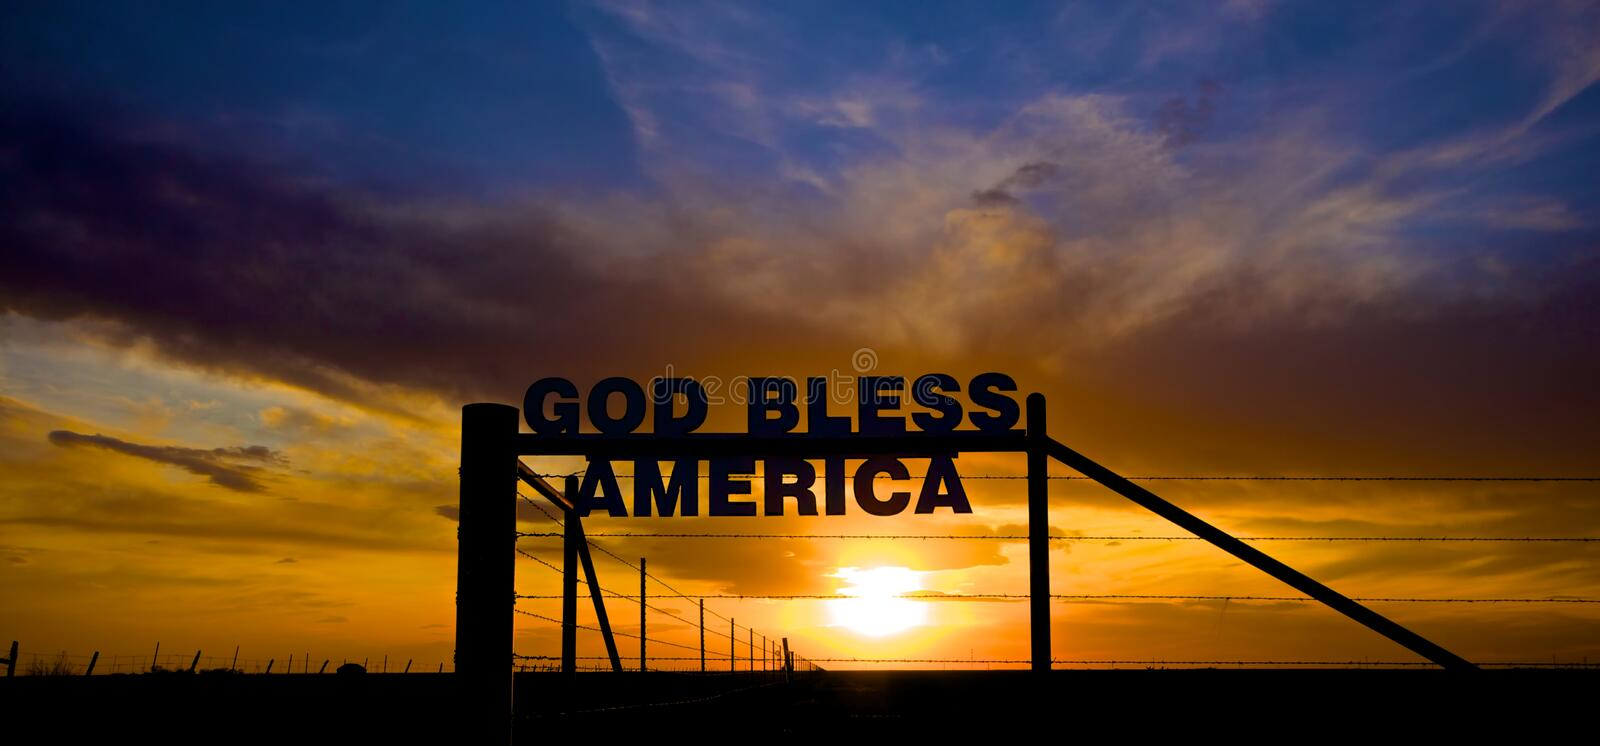 1 112 God Bless America Photos Free Royalty Free Stock Photos From Dreamstime